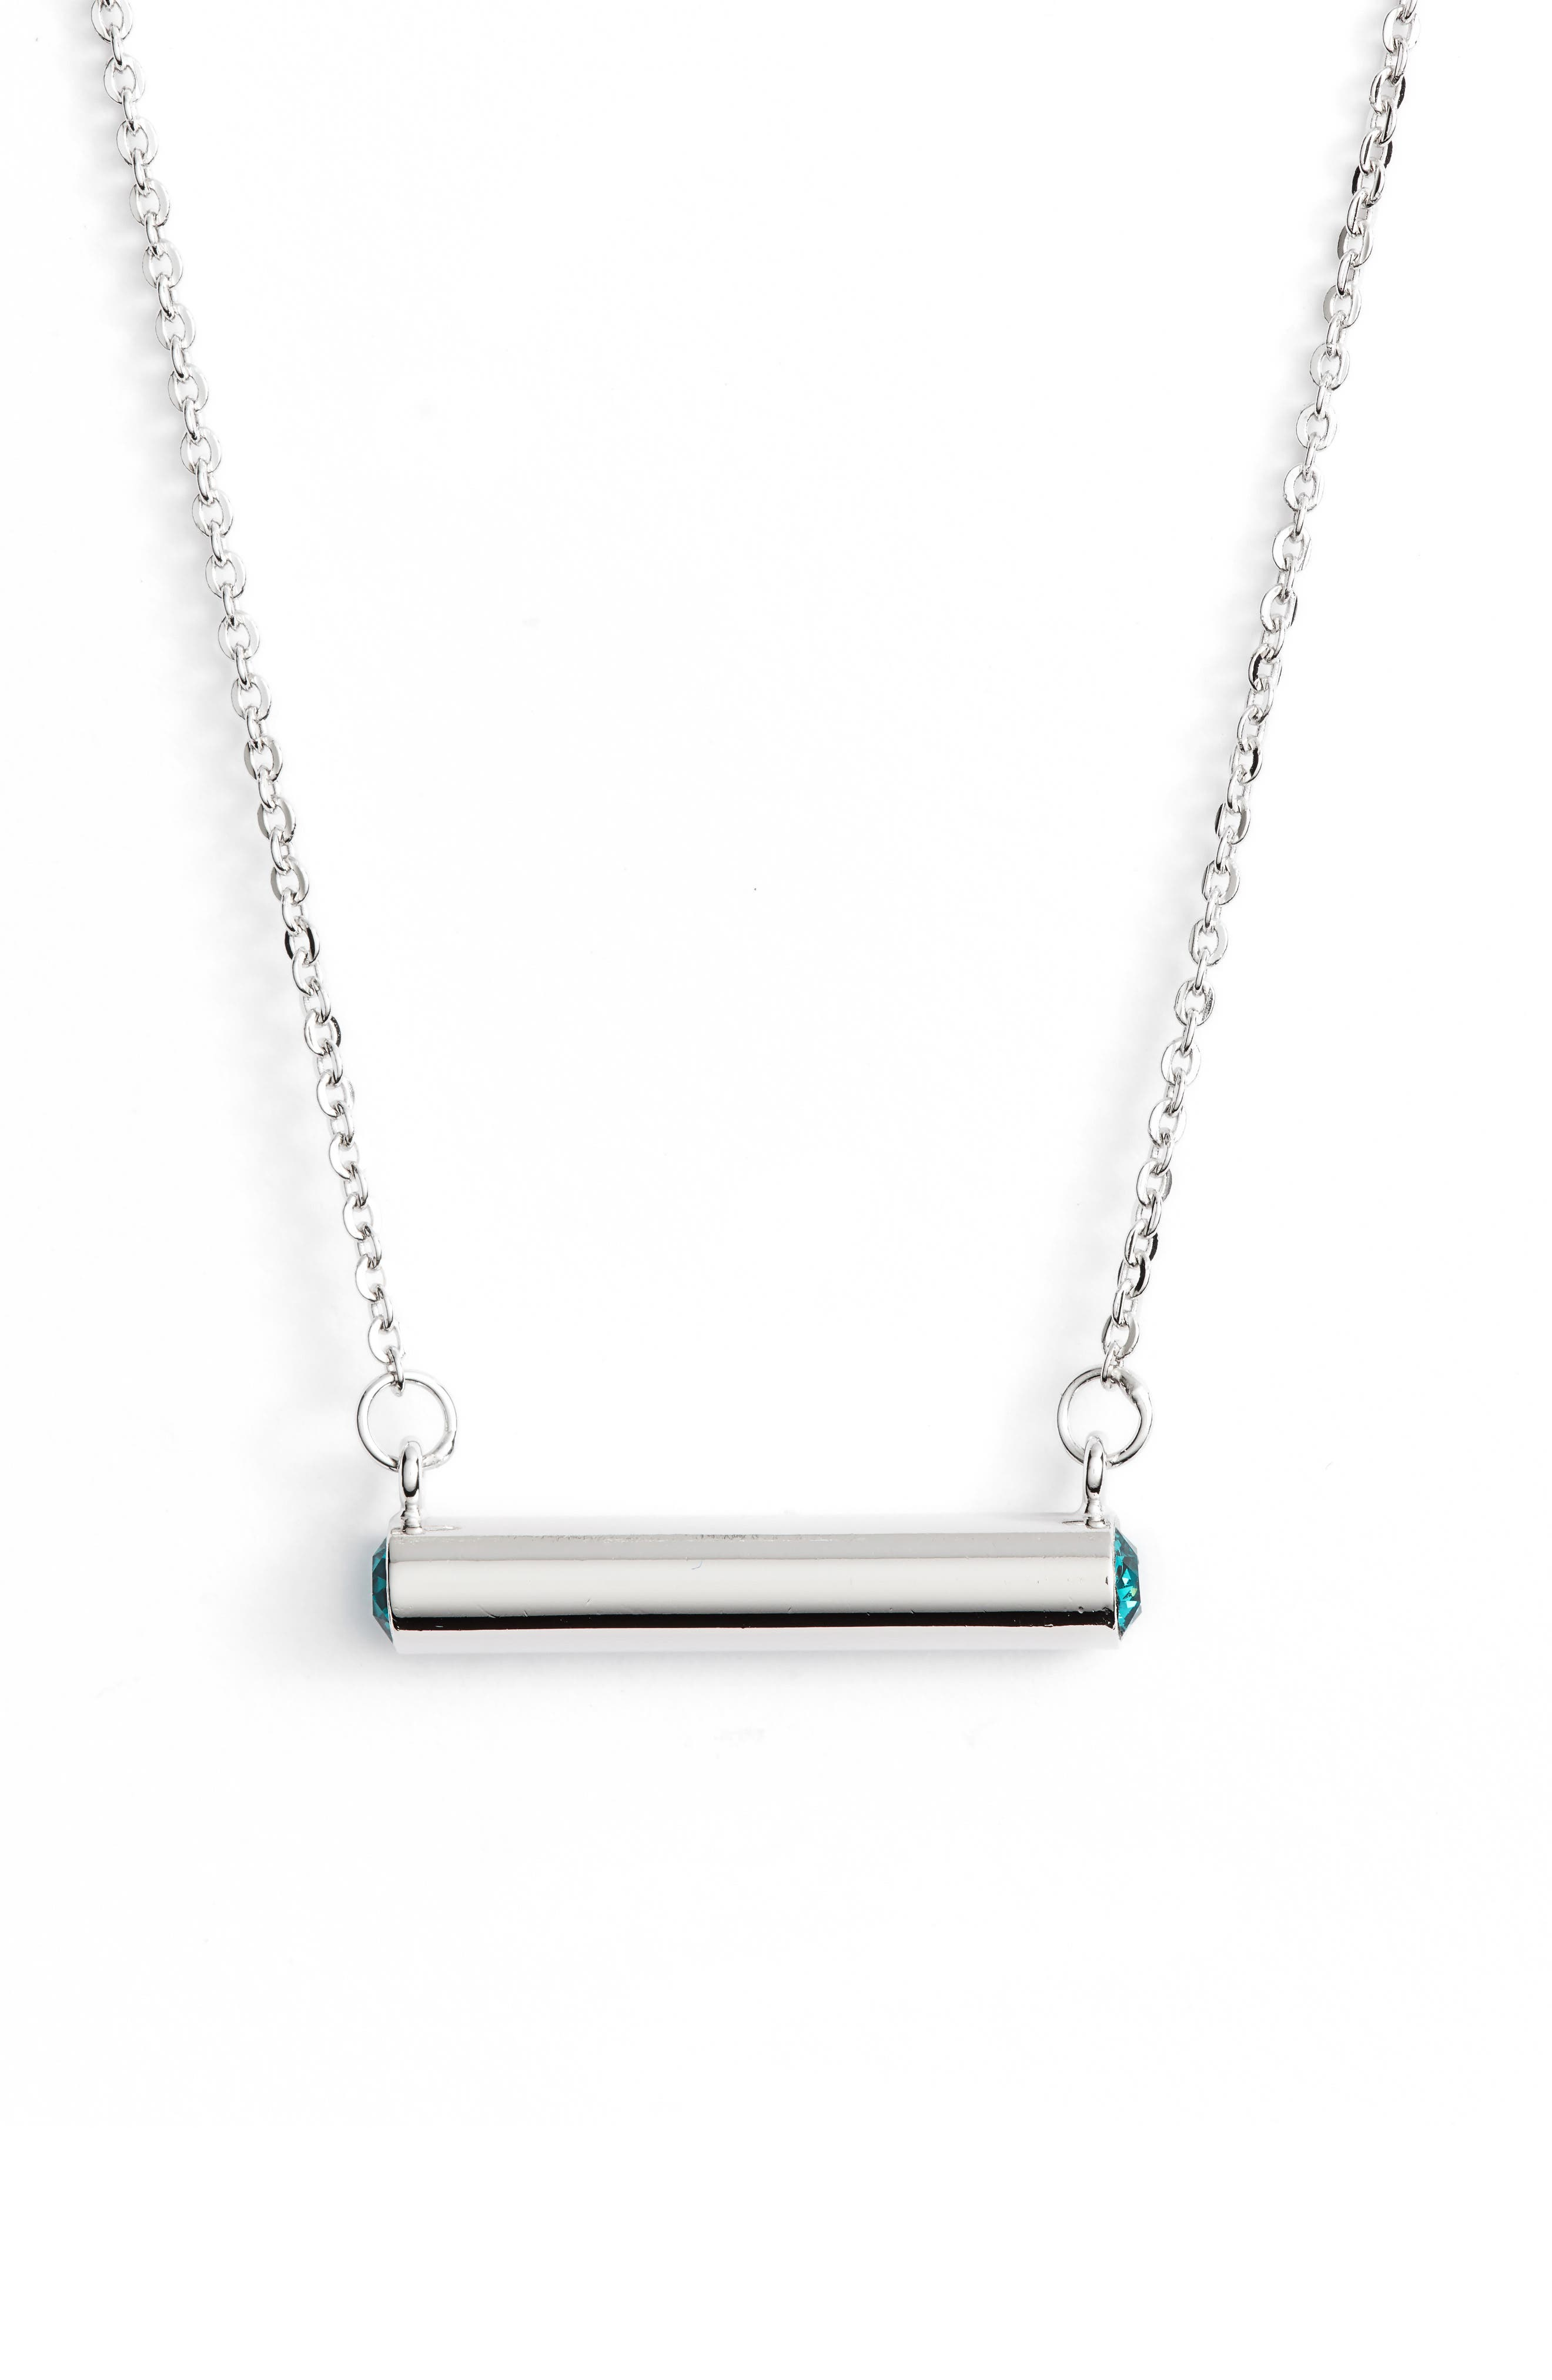 December Crystal Bar Pendant Necklace,                             Main thumbnail 1, color,                             040